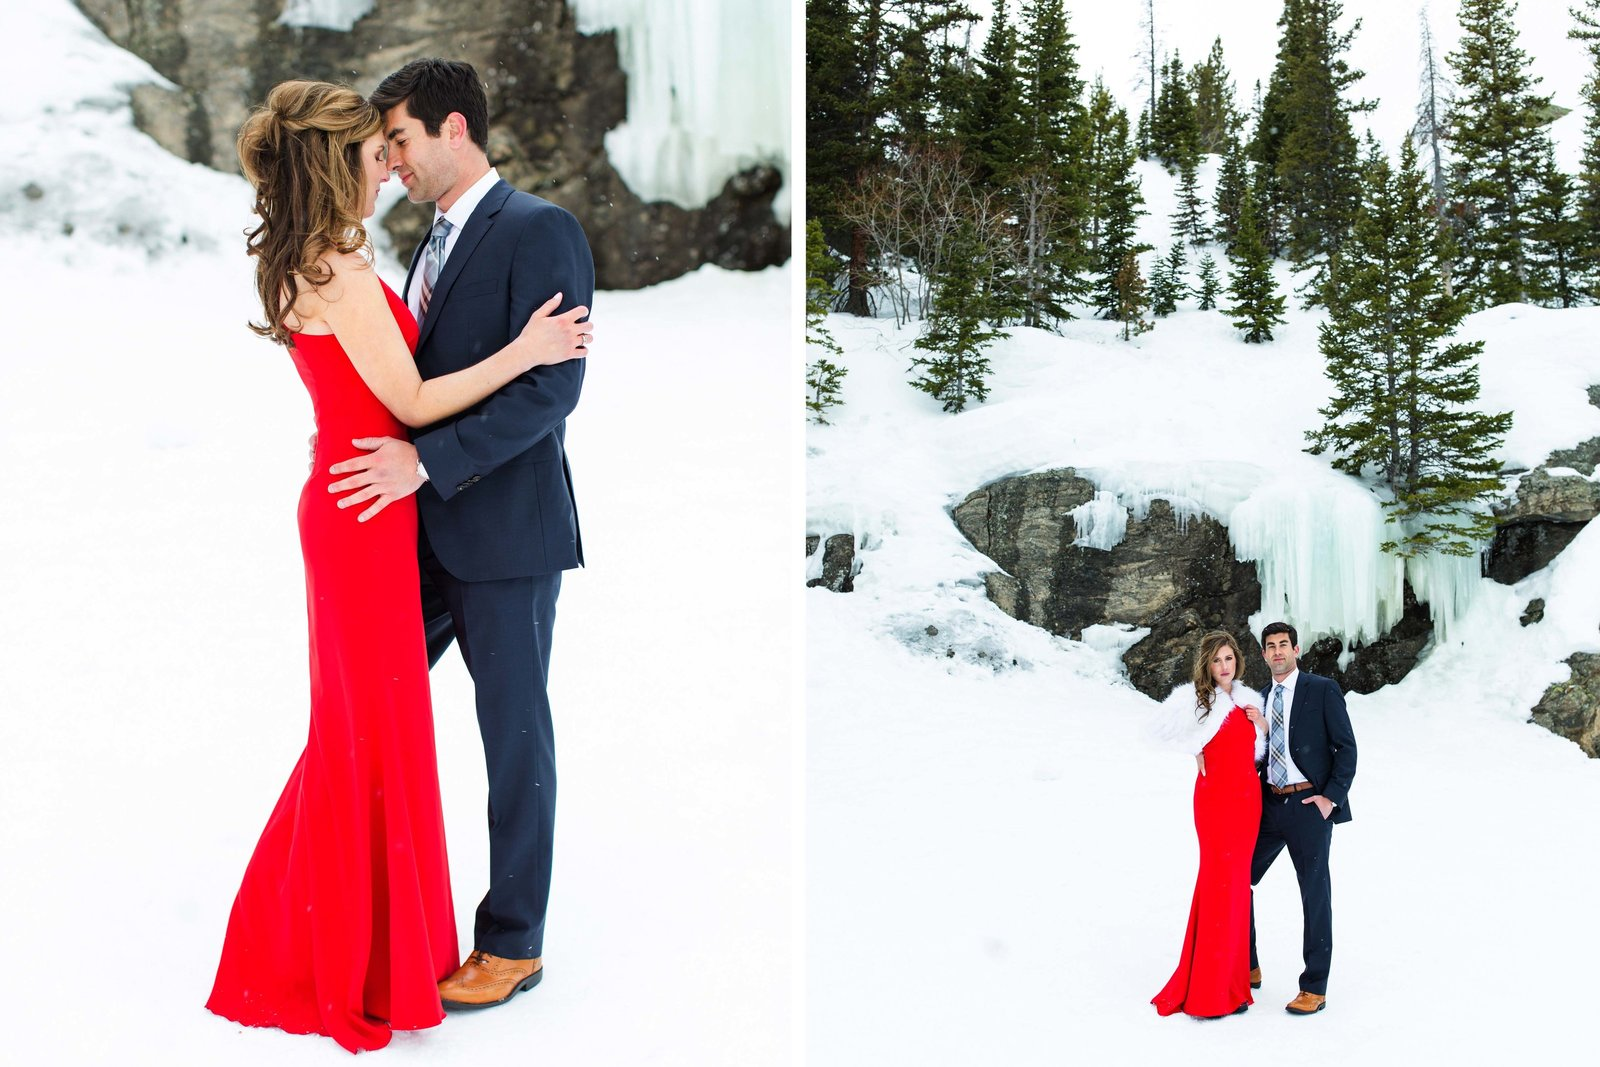 Jessi-And-Zach-Photography-Colorado-Wedding-Photographer-Nevada-Wedding-Photographer-Nevada-Engagement-Photographer_06